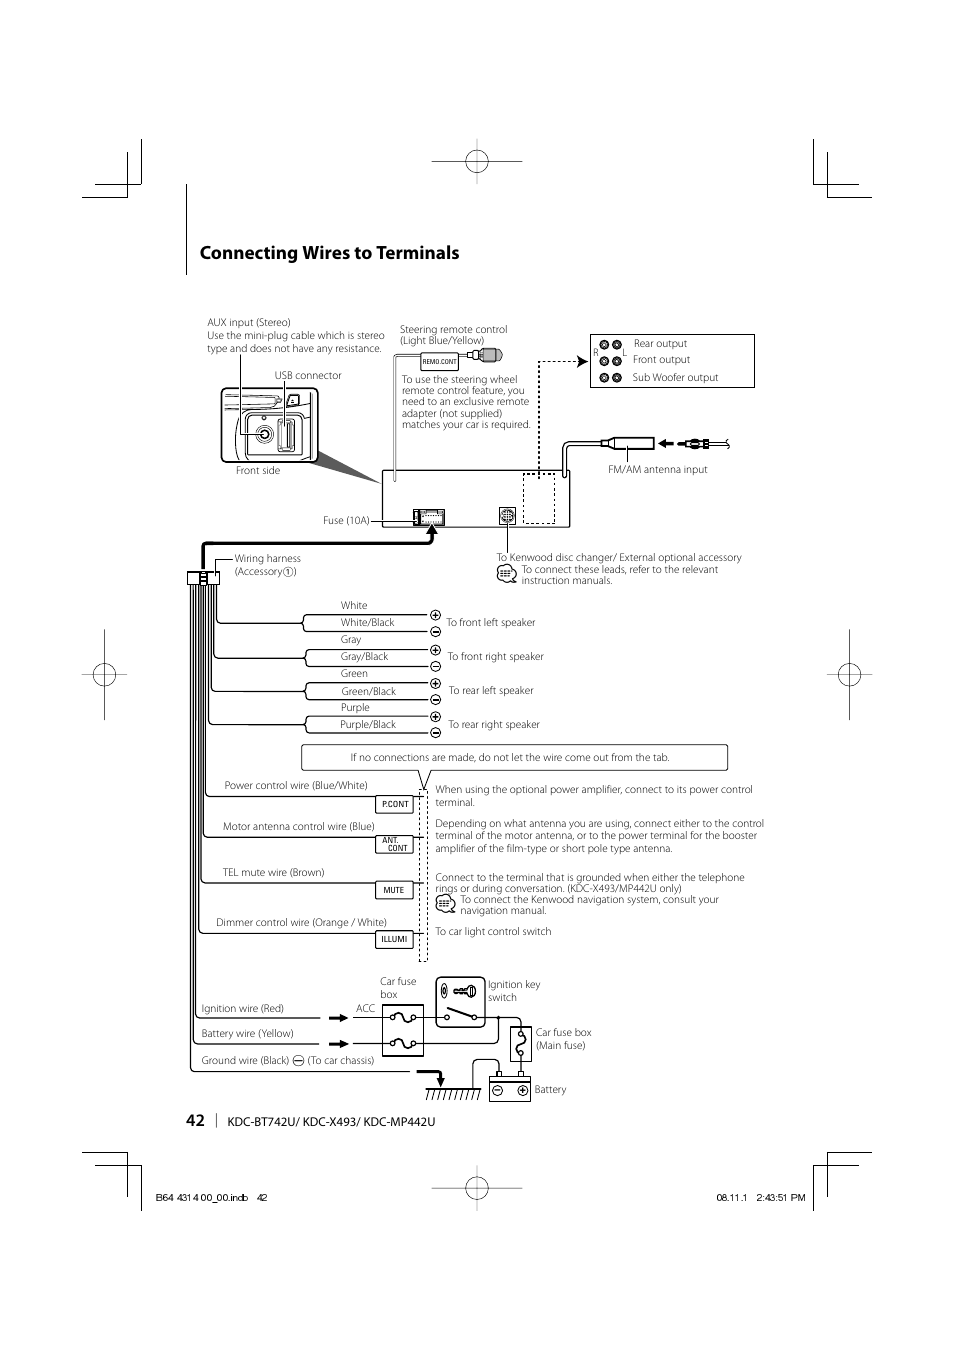 Kdc Wiring Diagram Data Schema Color Standards Connecting Wires To Terminals Kenwood Bt742u User Manual